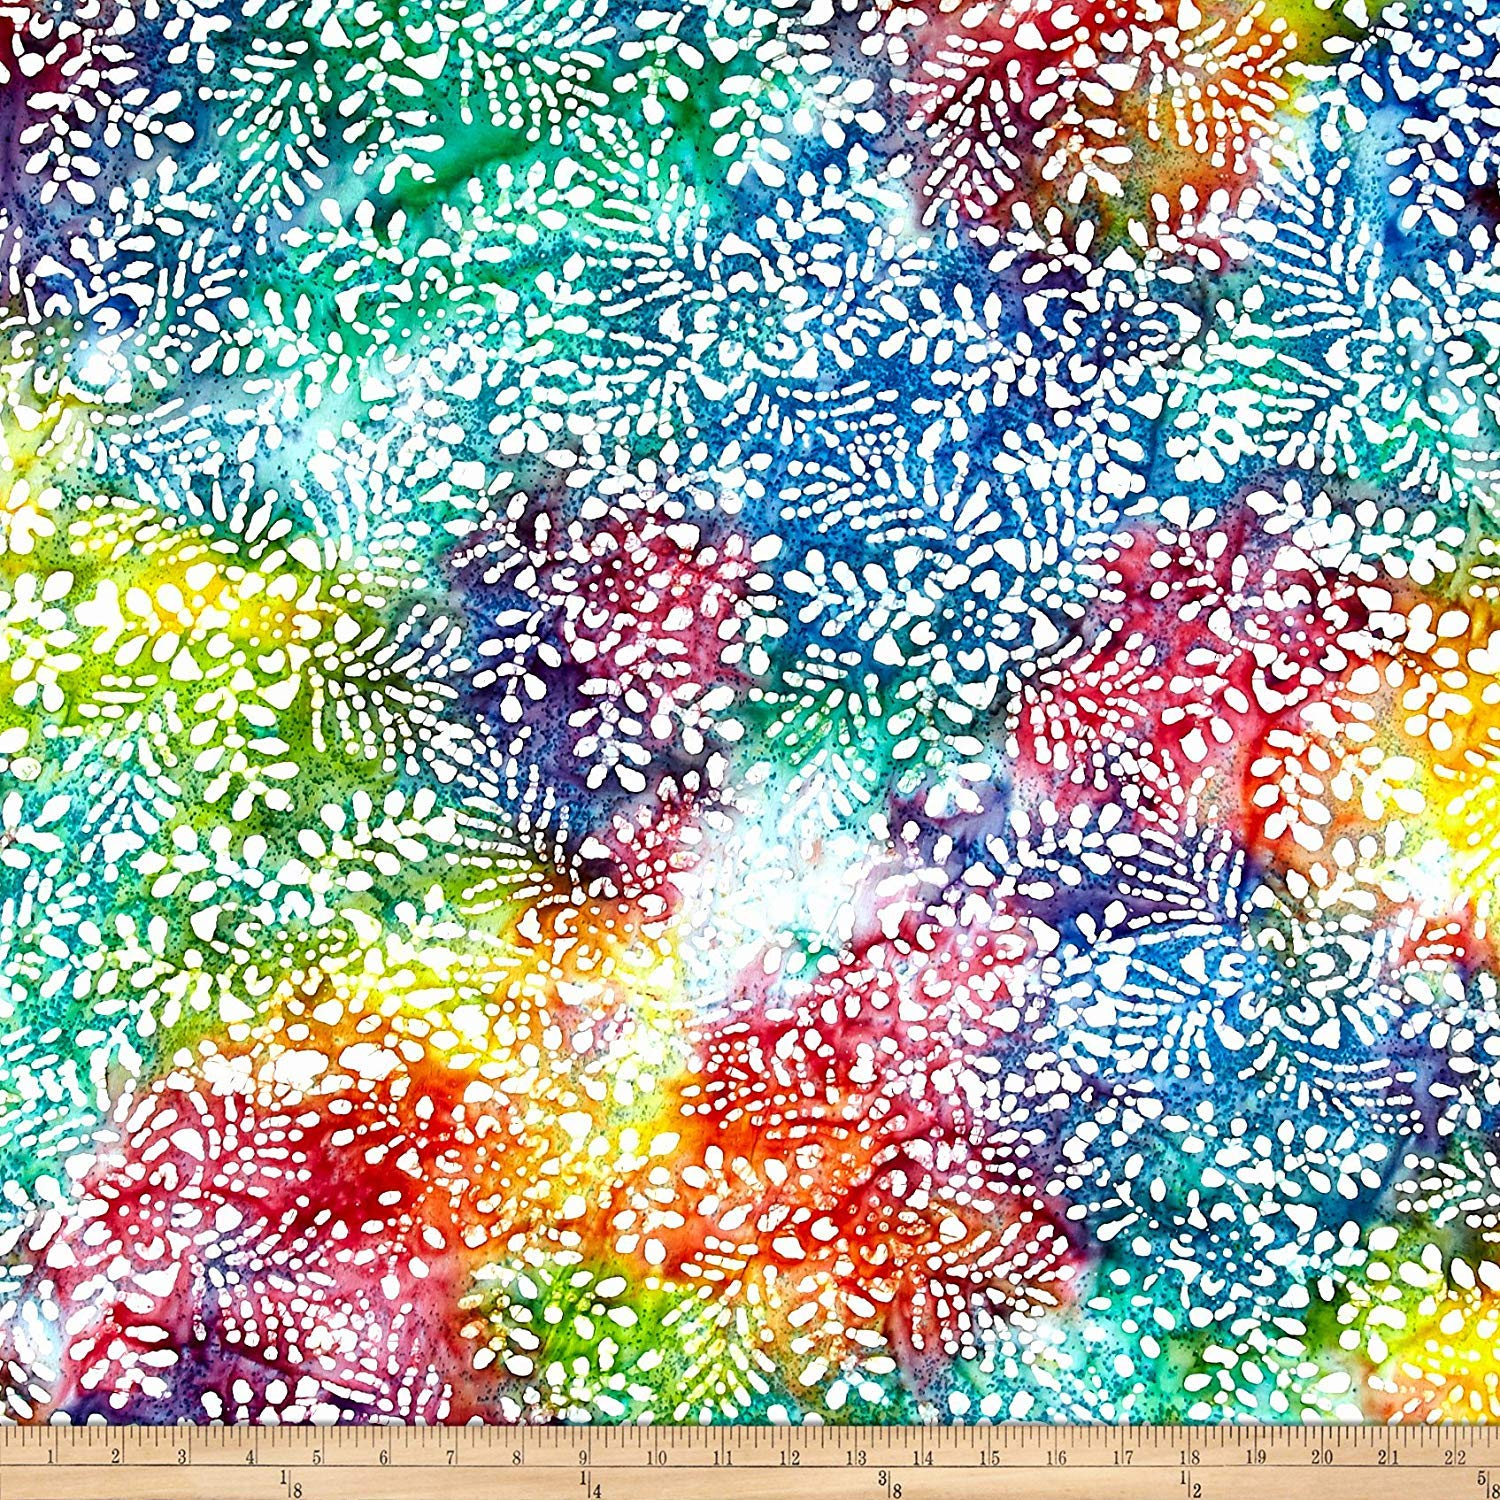 419d9423a8f Amazon.com: Textile Creations 0530738 Cotton Jersey Knit Batik Floral Bright/Multi  Fabric by The Yard Multicolor